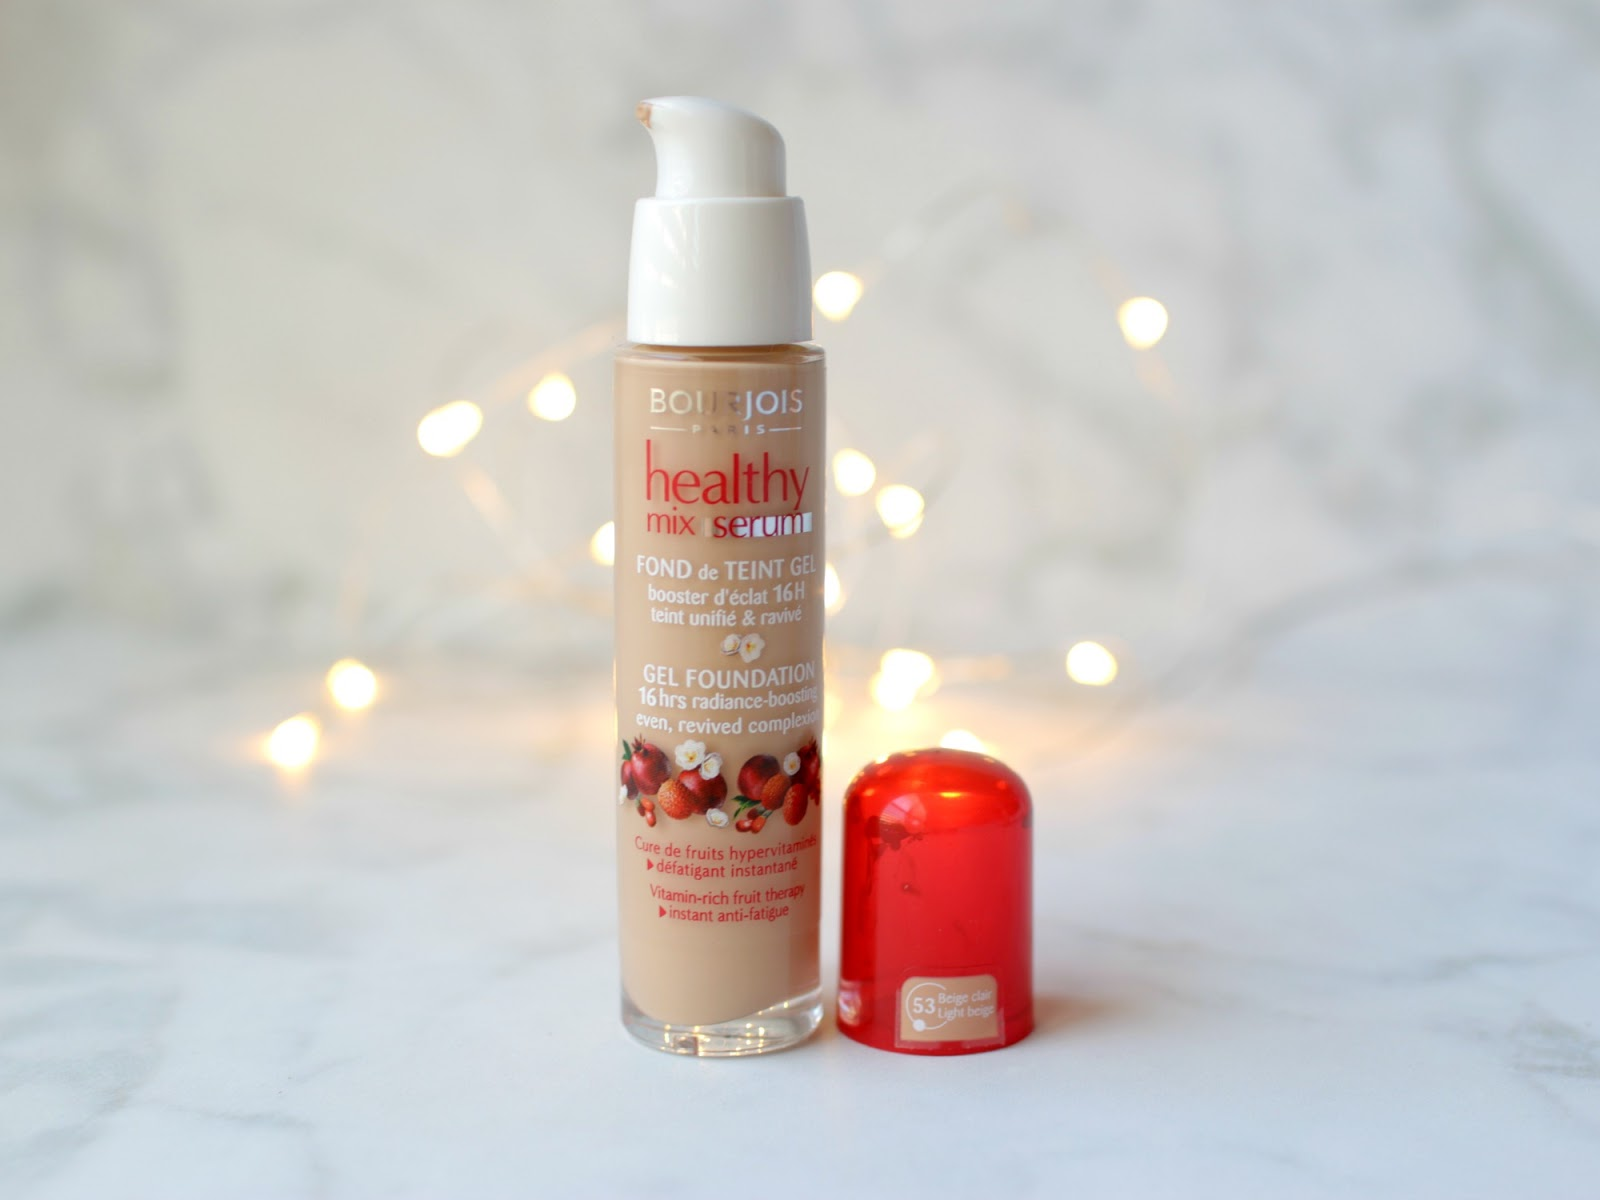 Healthy Mix Serum, Bourjois